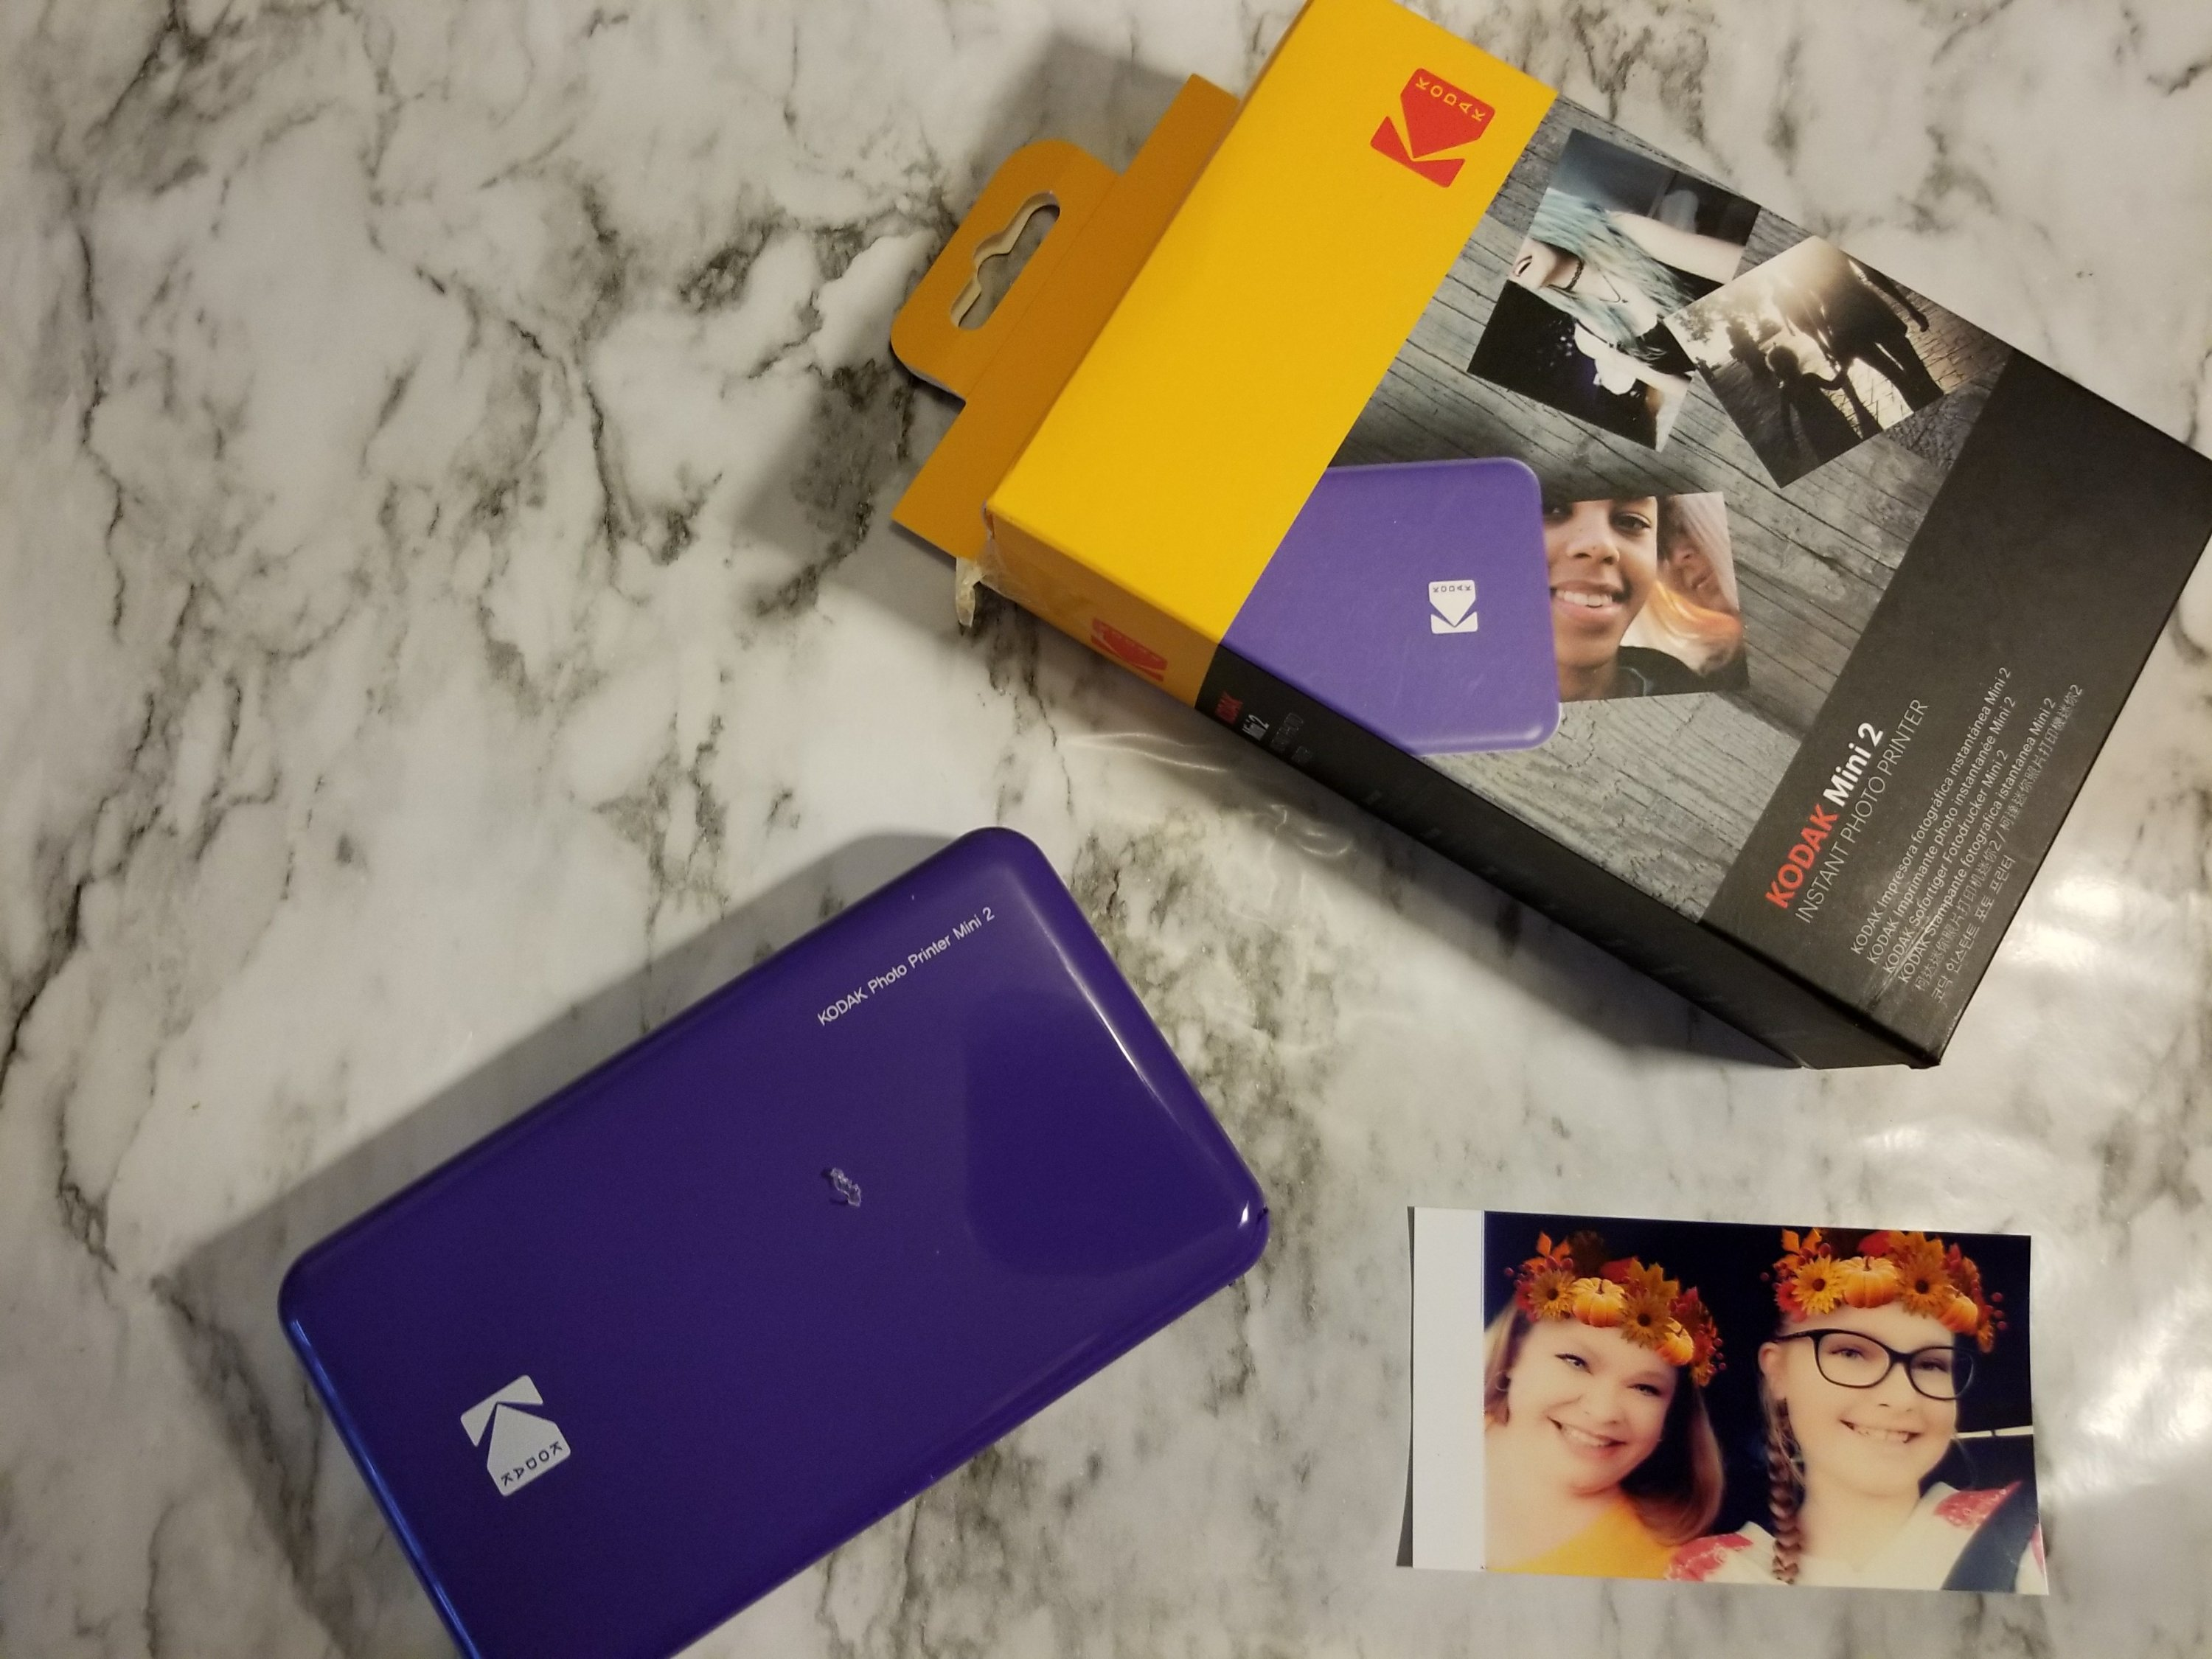 KODAK Mini 2 Review - How. to use it and see it in action.